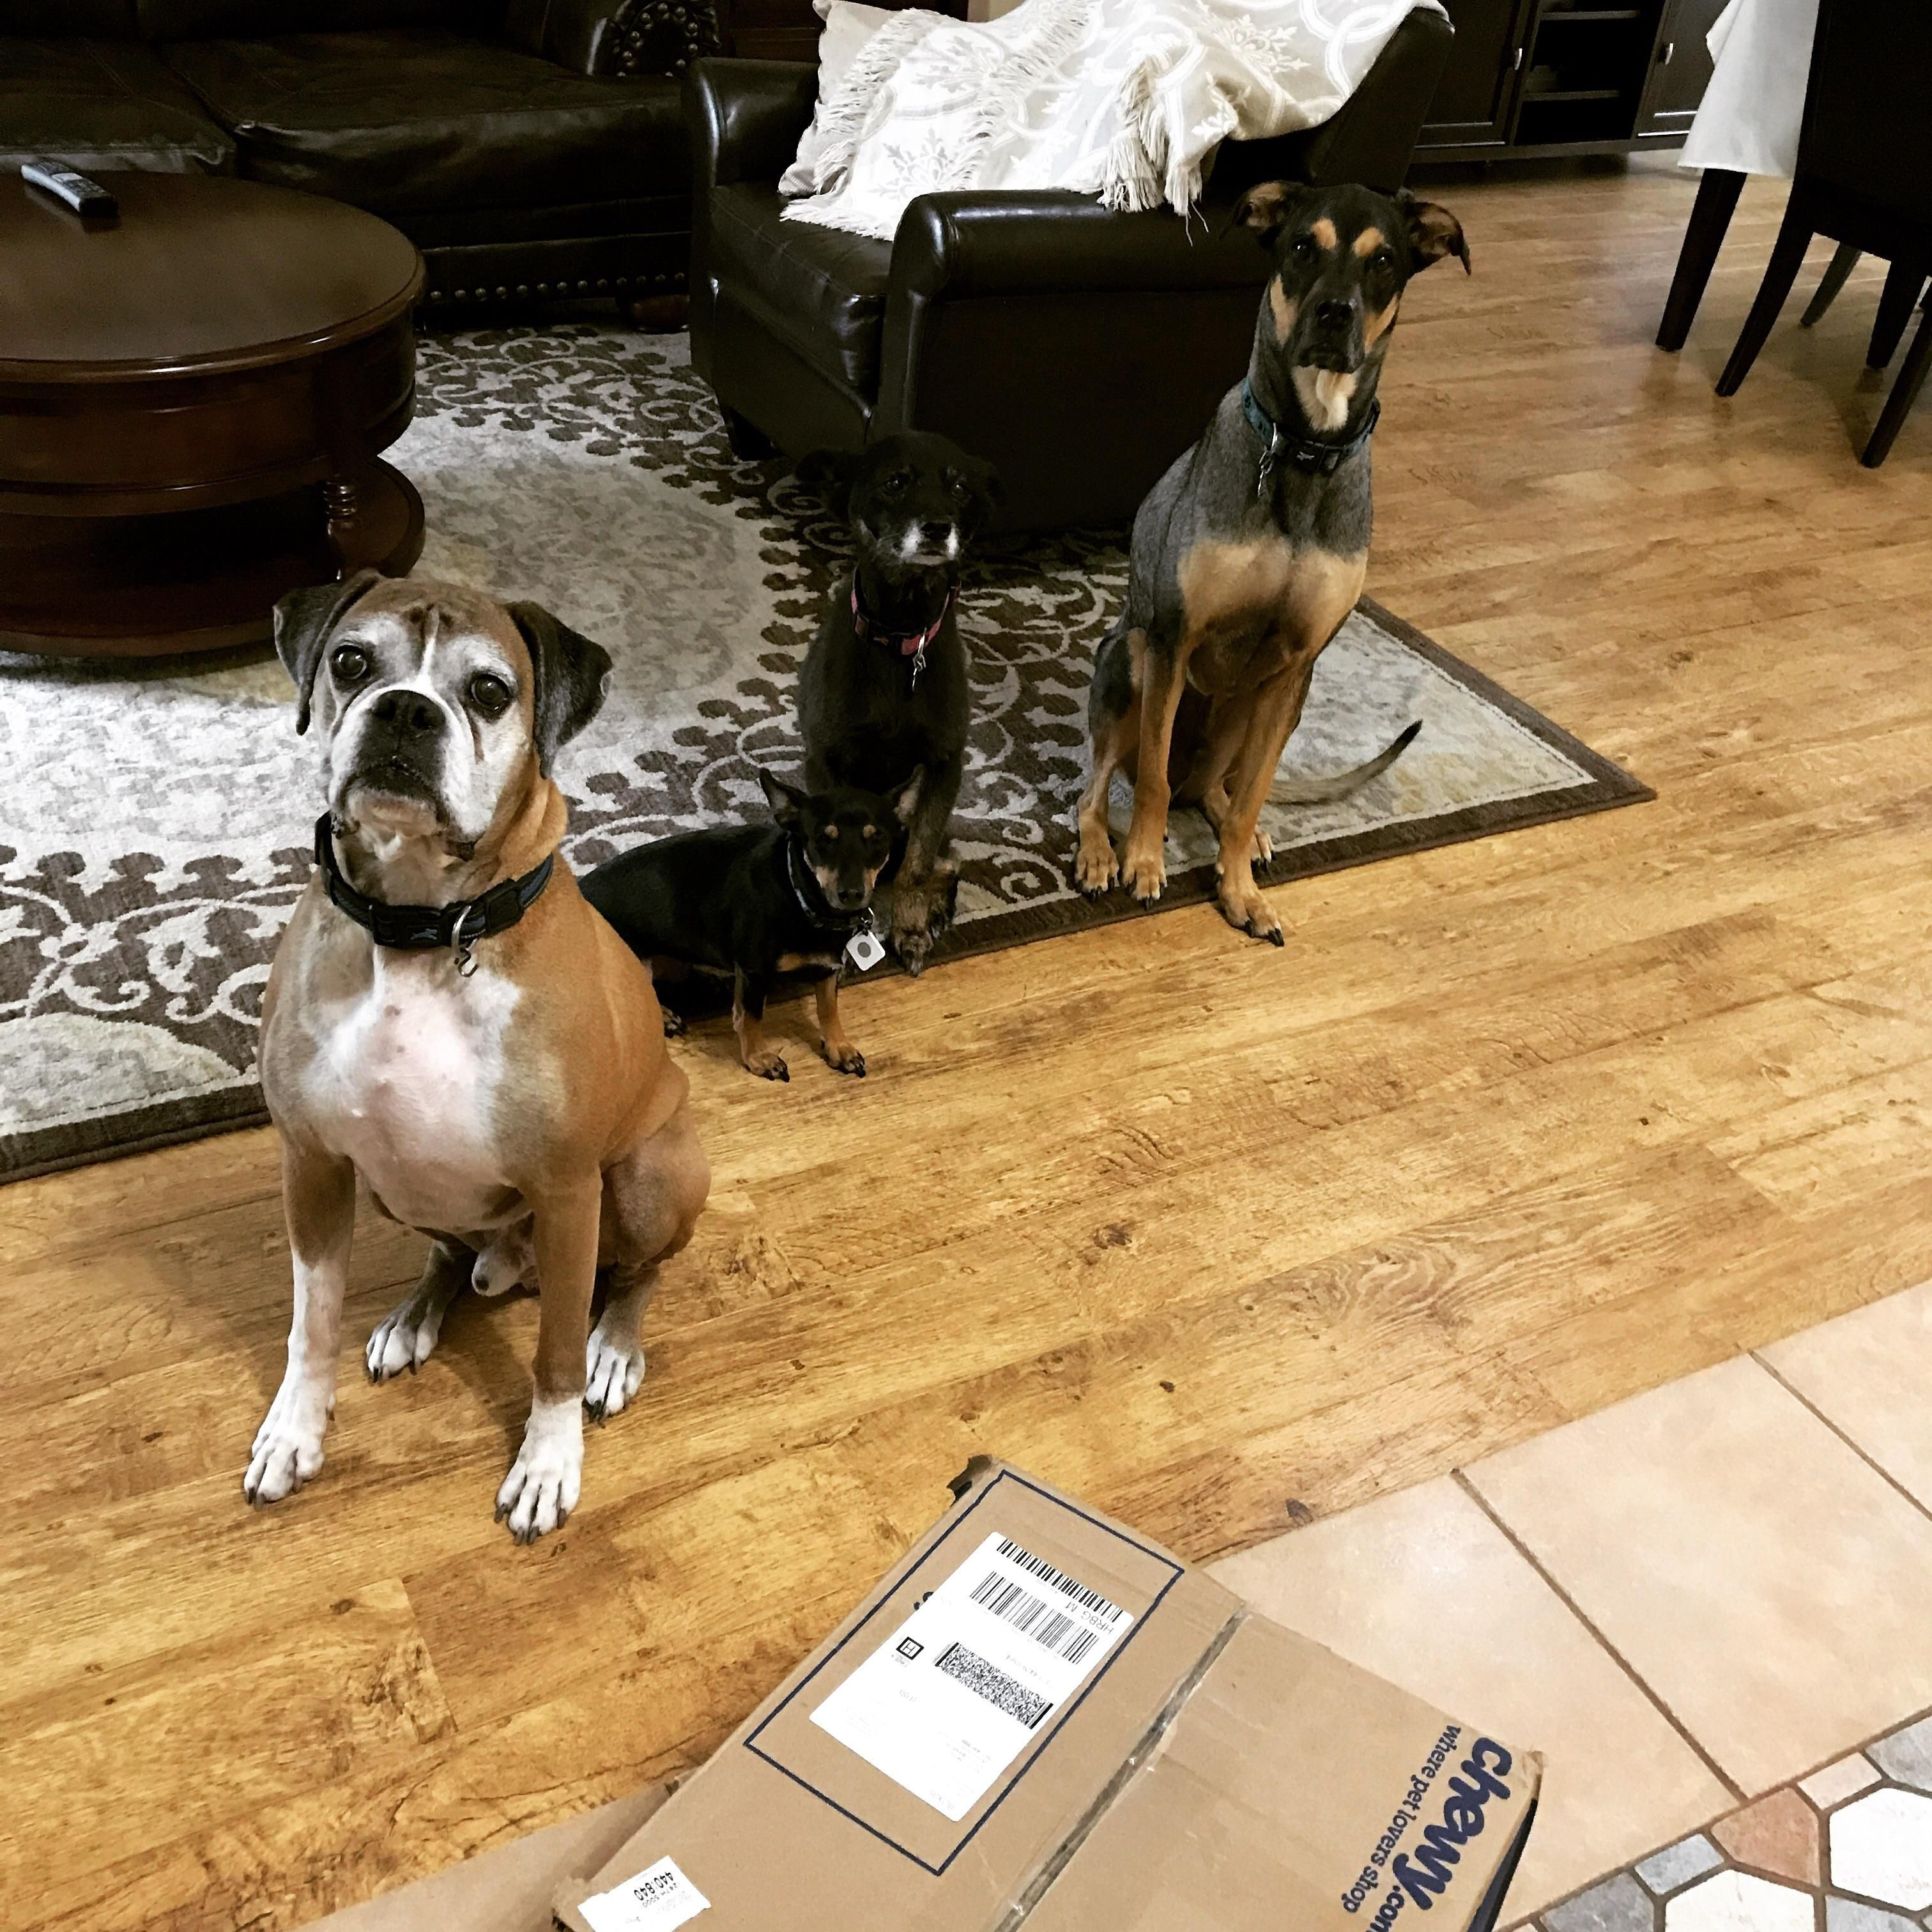 Well behaved doggos http://ift.tt/2sDuygJ